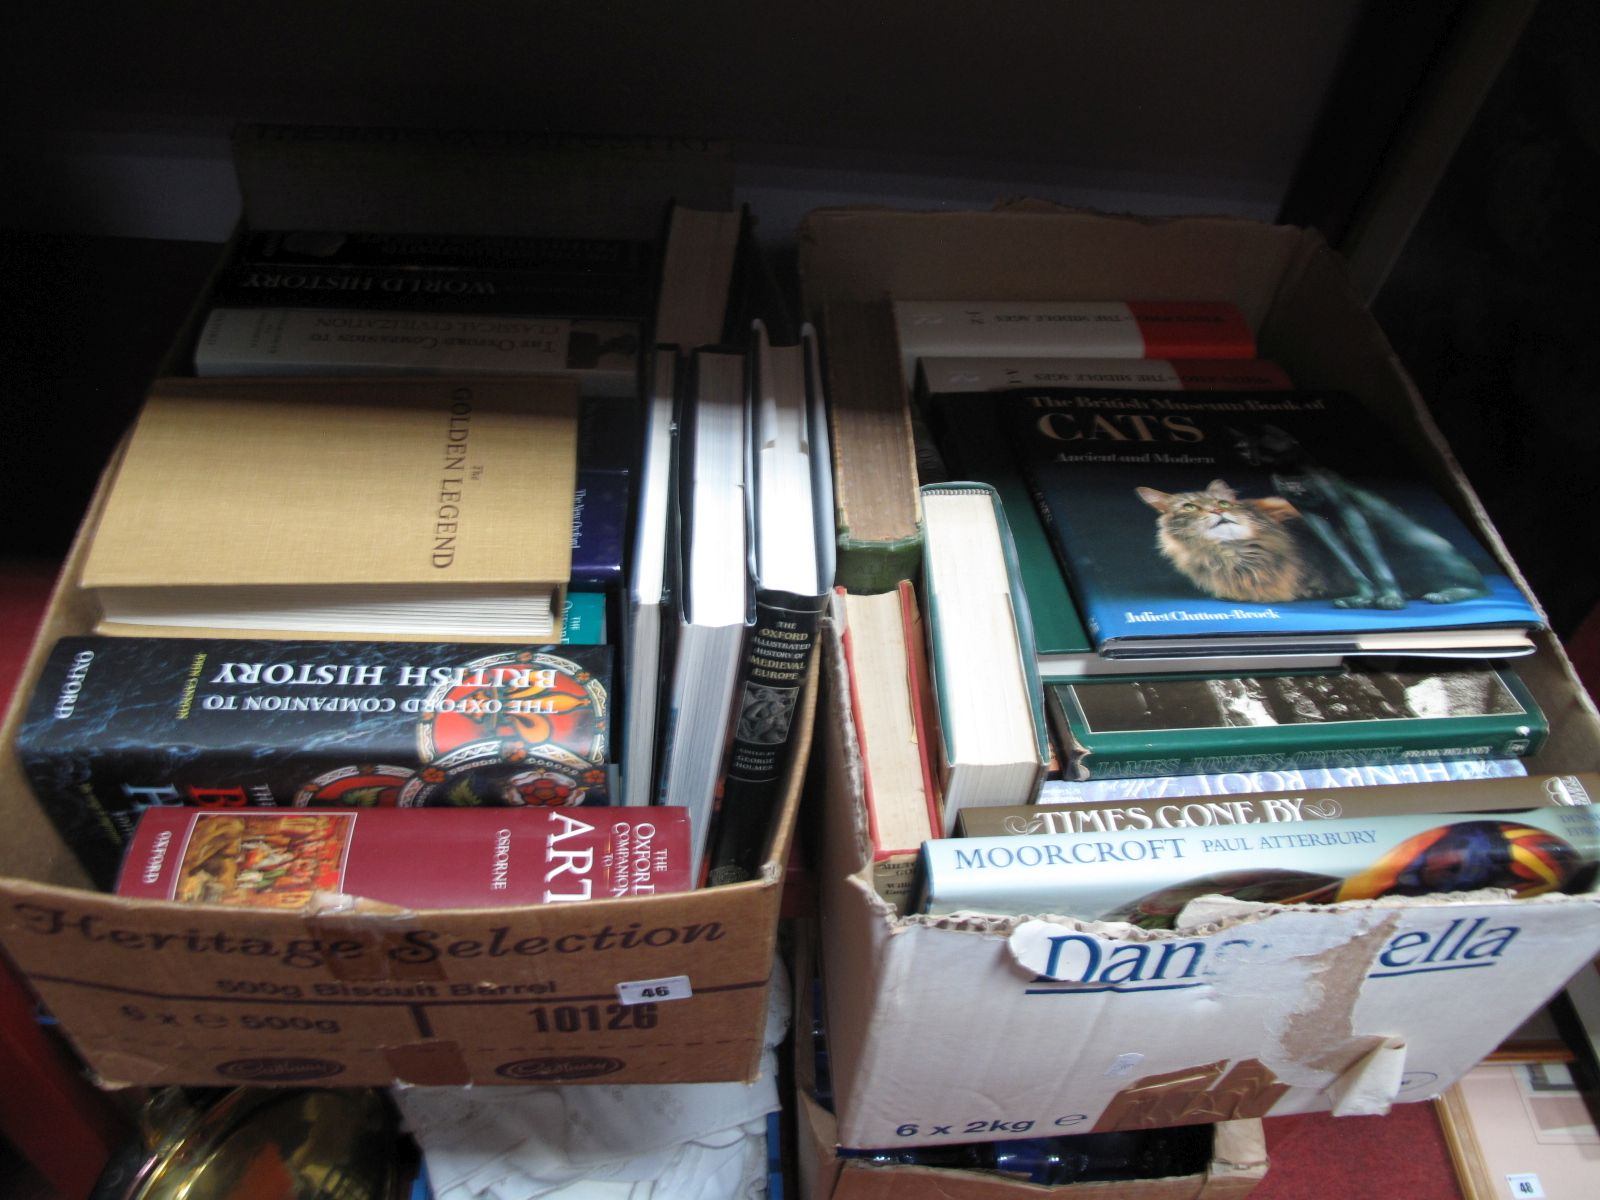 Lot 46 - Books, Moorcroft by Paul Atterbury, Henry Root, Thomas Hardy, The Bayeux Tapestry, etc:- Two Boxes